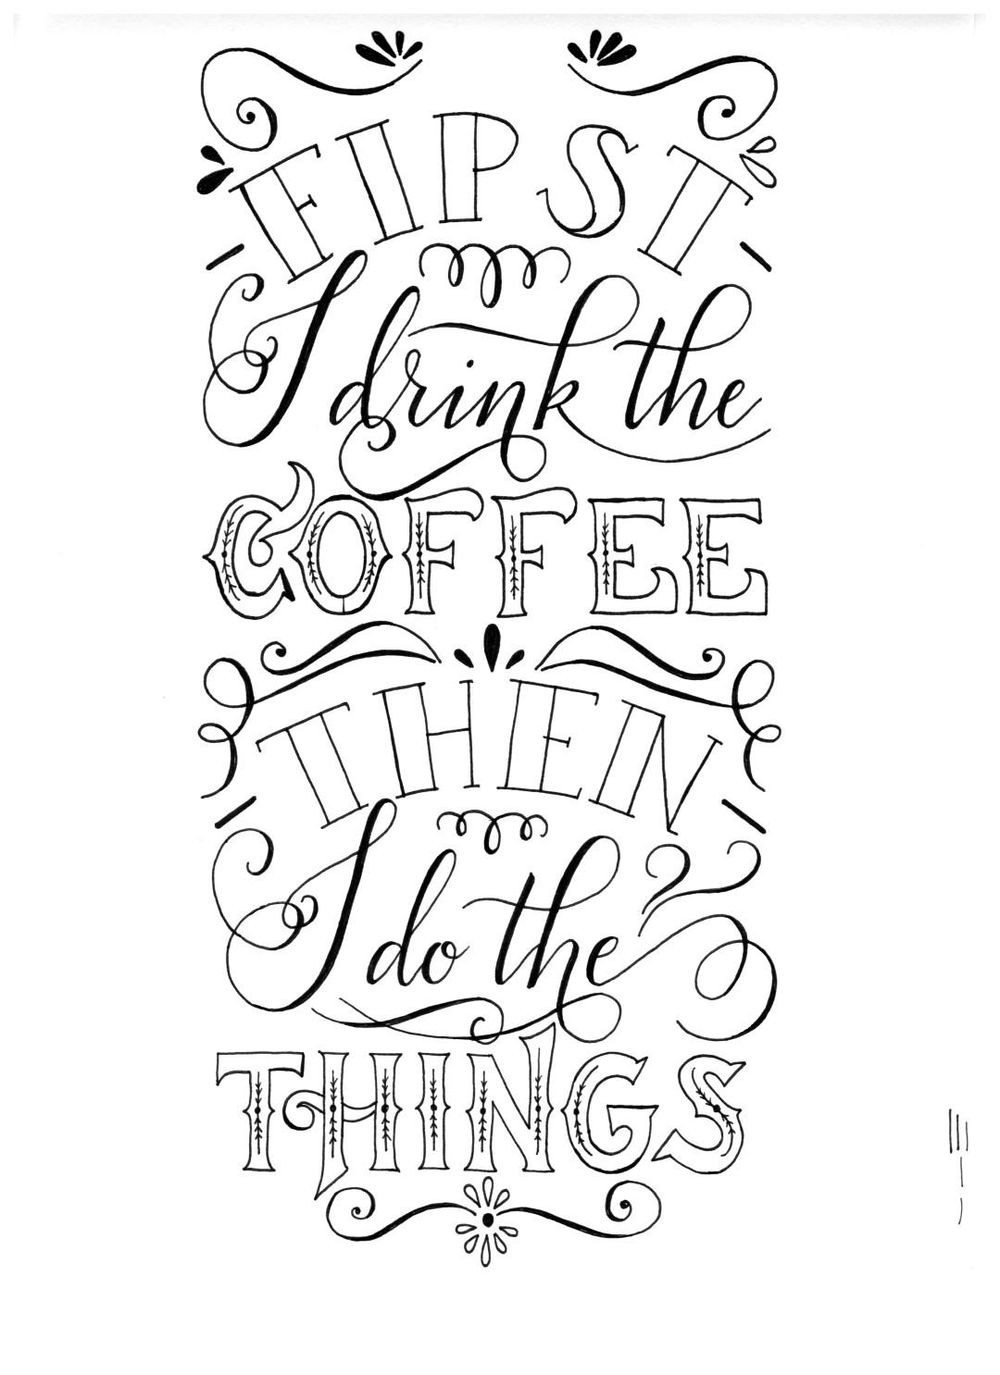 Vintage coffee quote - image 1 - student project